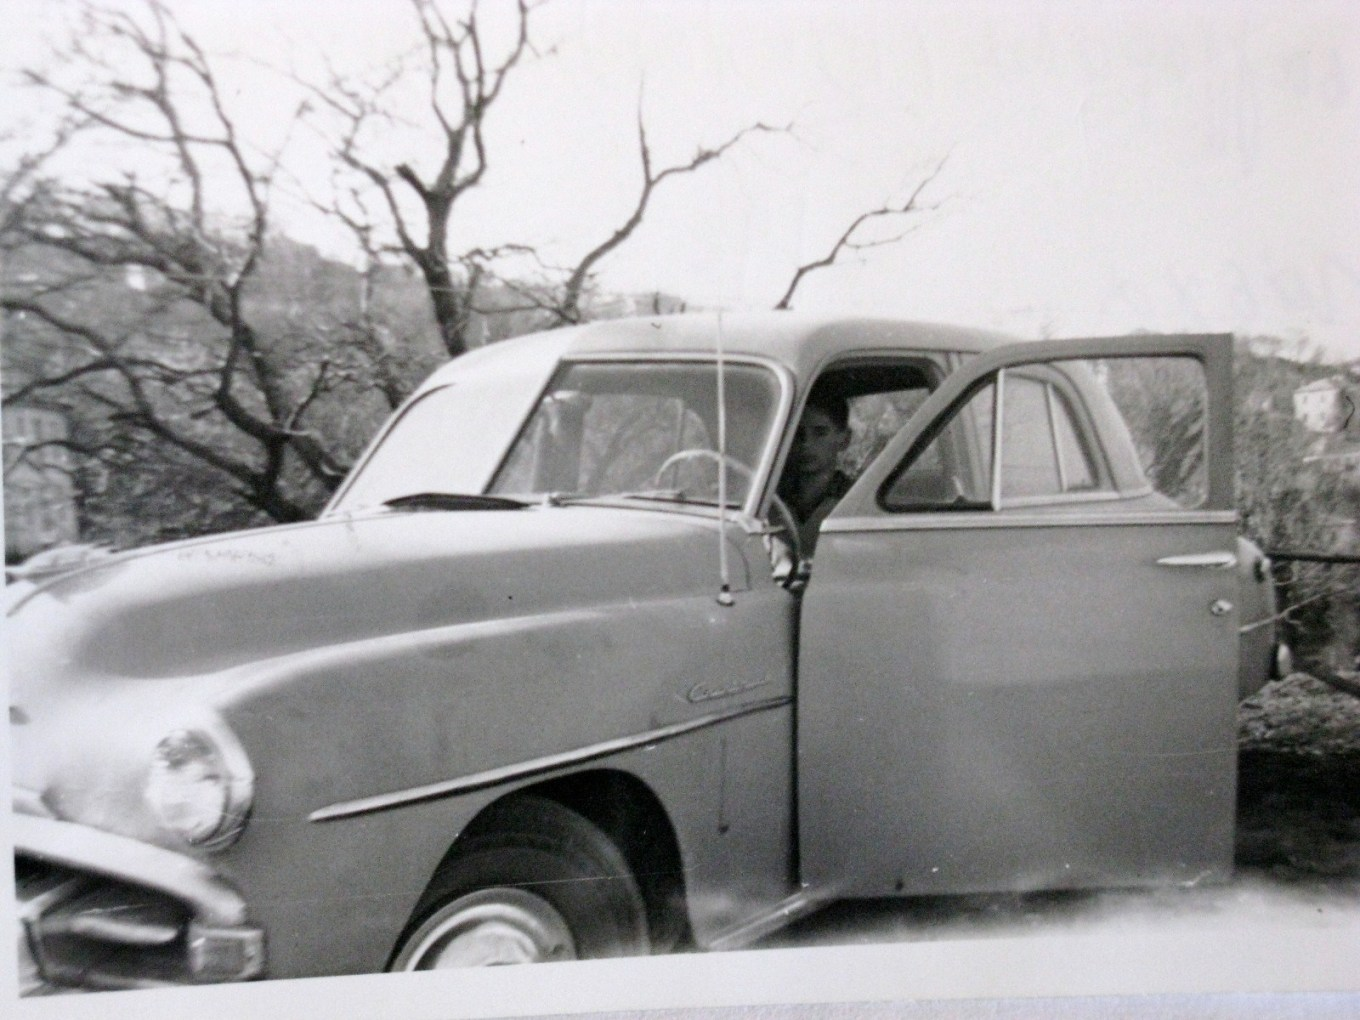 The Plymouth '52 and Byron ca. 1958 in Tsagarada, Pelion.